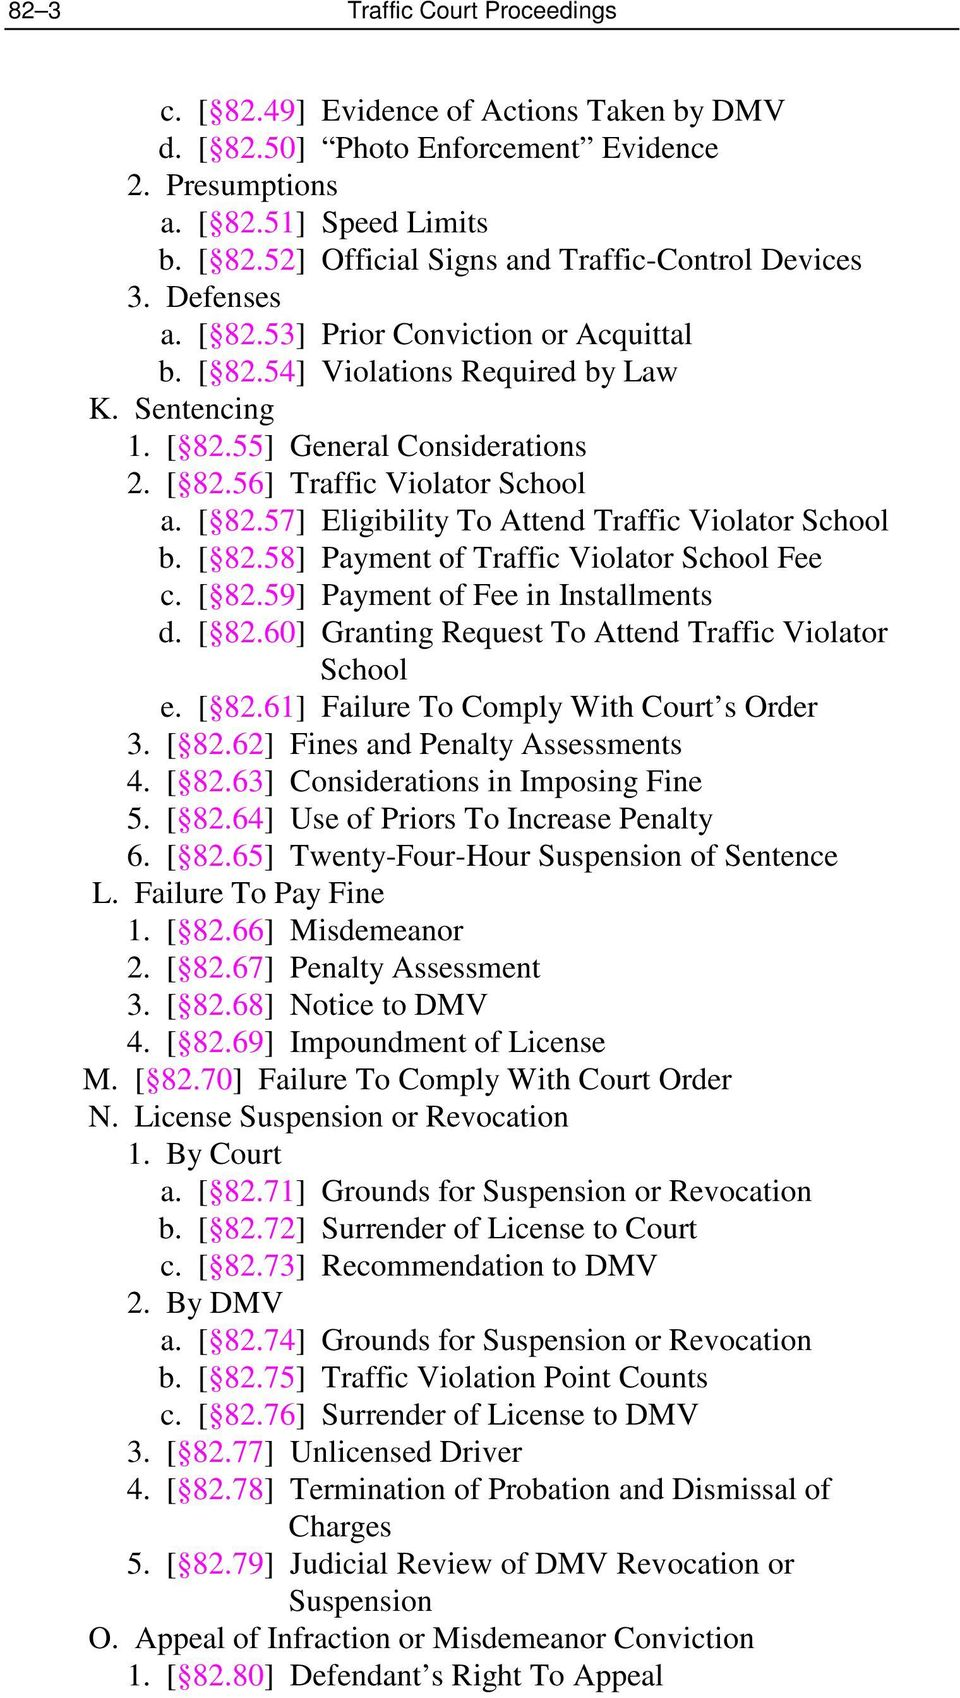 [ 82.58] Payment of Traffic Violator School Fee c. [ 82.59] Payment of Fee in Installments d. [ 82.60] Granting Request To Attend Traffic Violator School e. [ 82.61] Failure To Comply With Court s Order 3.